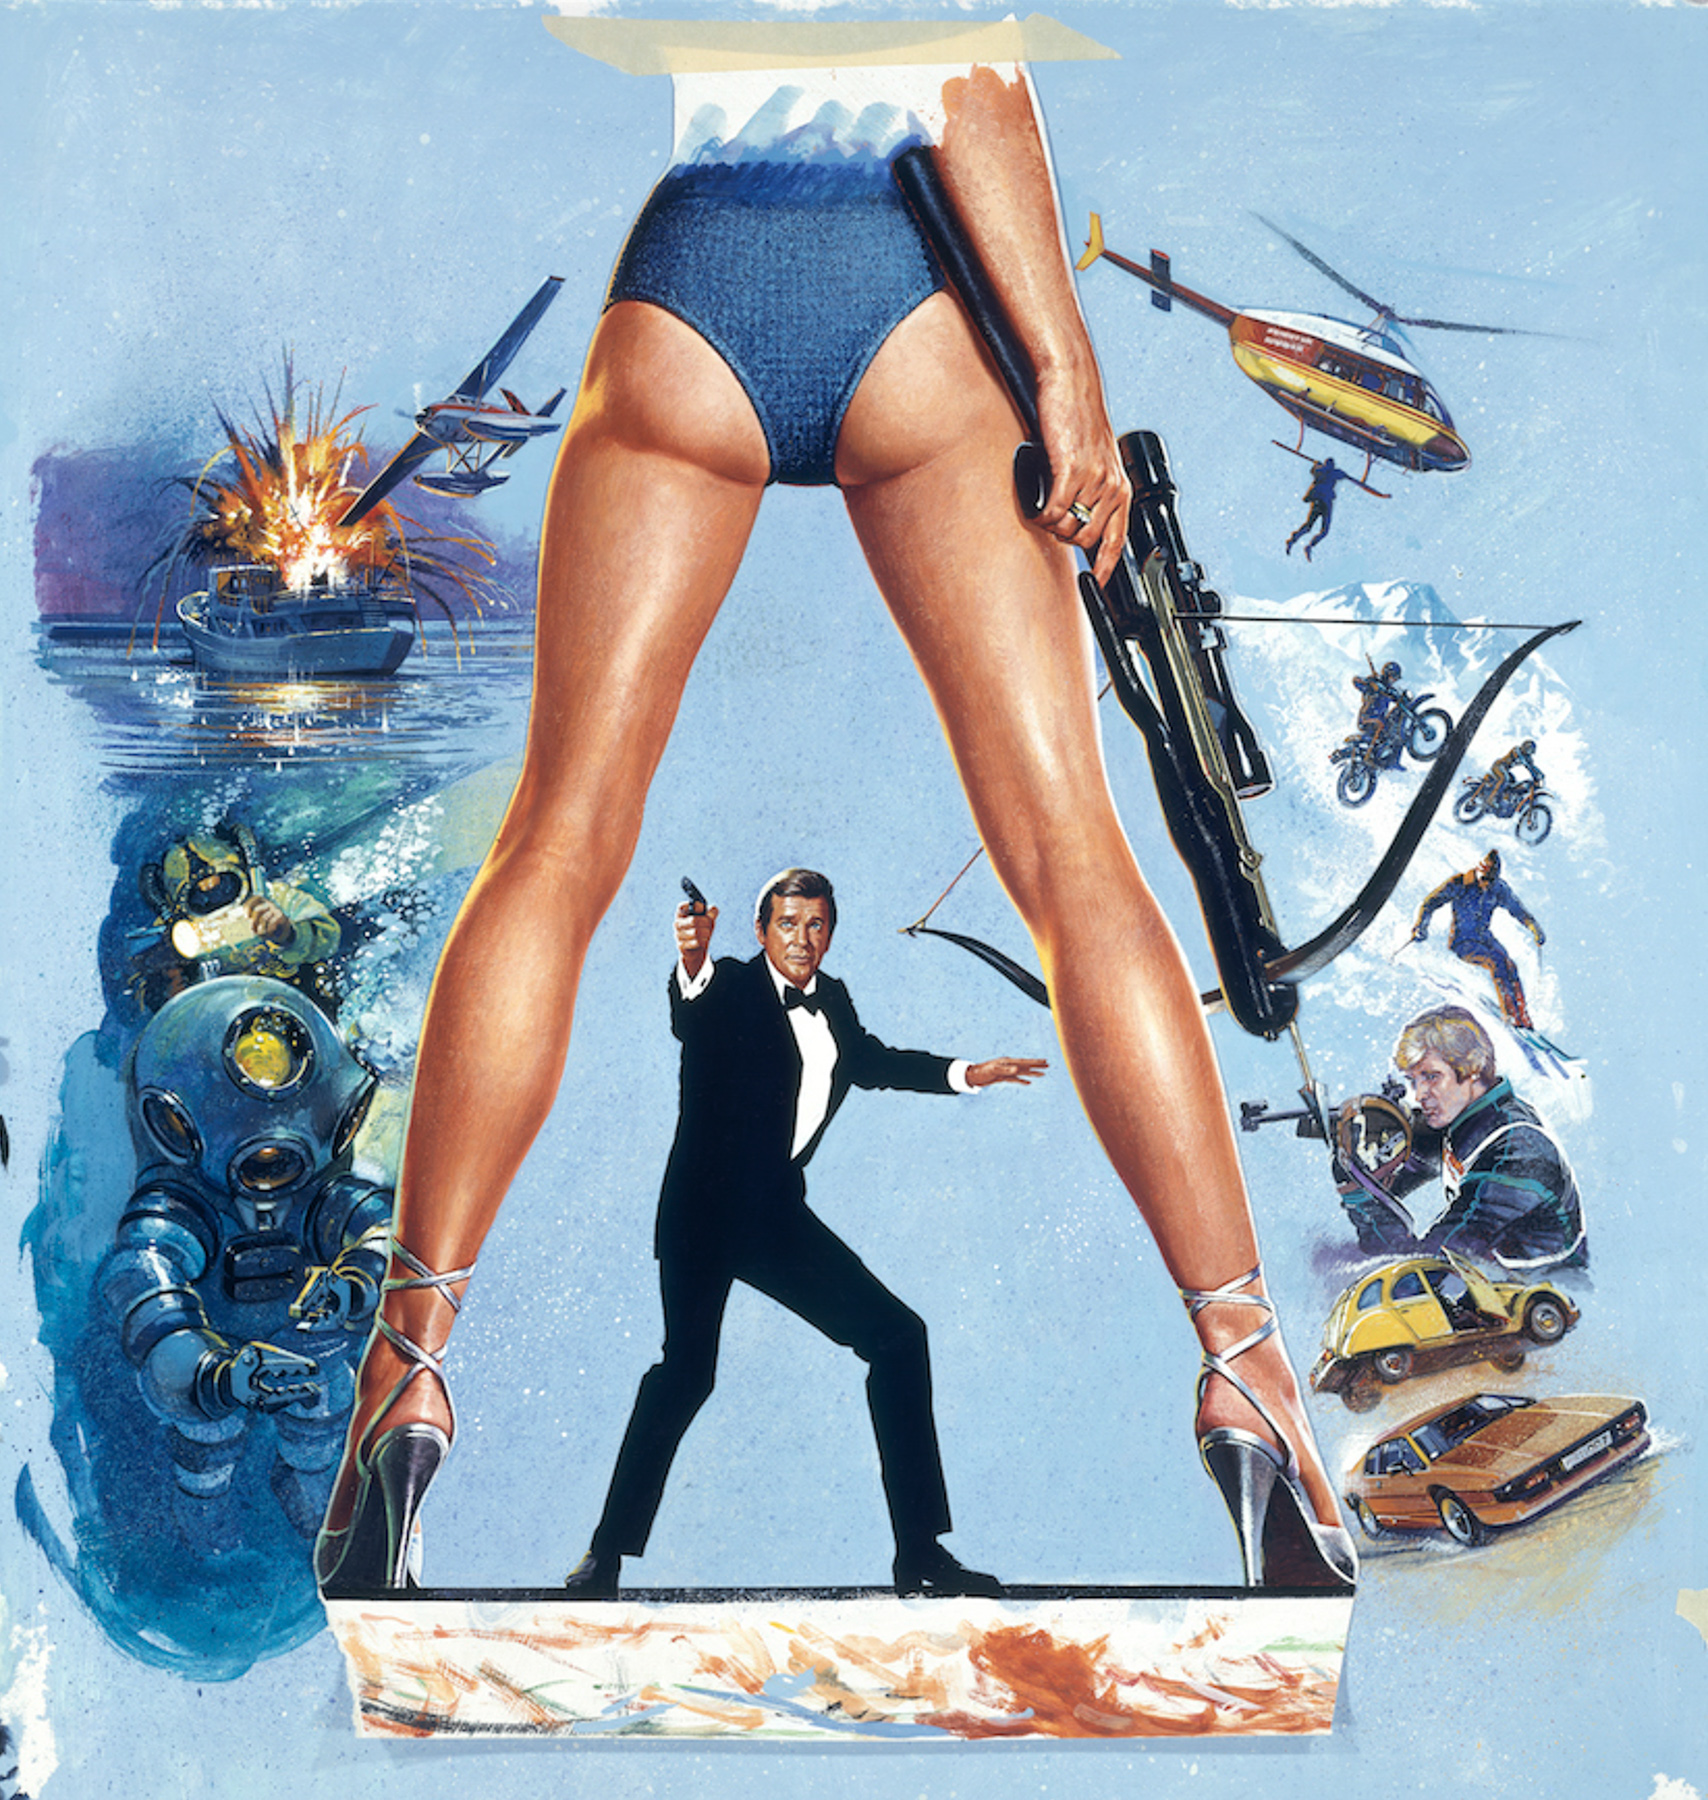 The original artwork for For Your Eyes Only (1981) painted by Brian Bysouth. This is an image of the 8x10 inch transparency that would have been used by the studio (FEREF) to have the poster printed. Brian painted the legs and the character of Bond separately from the surrounding montage, which is why you can see the rough tape at the top and bottom holding the parts in place. This image comes from the private archive of Thomas Nixdorf, Germany